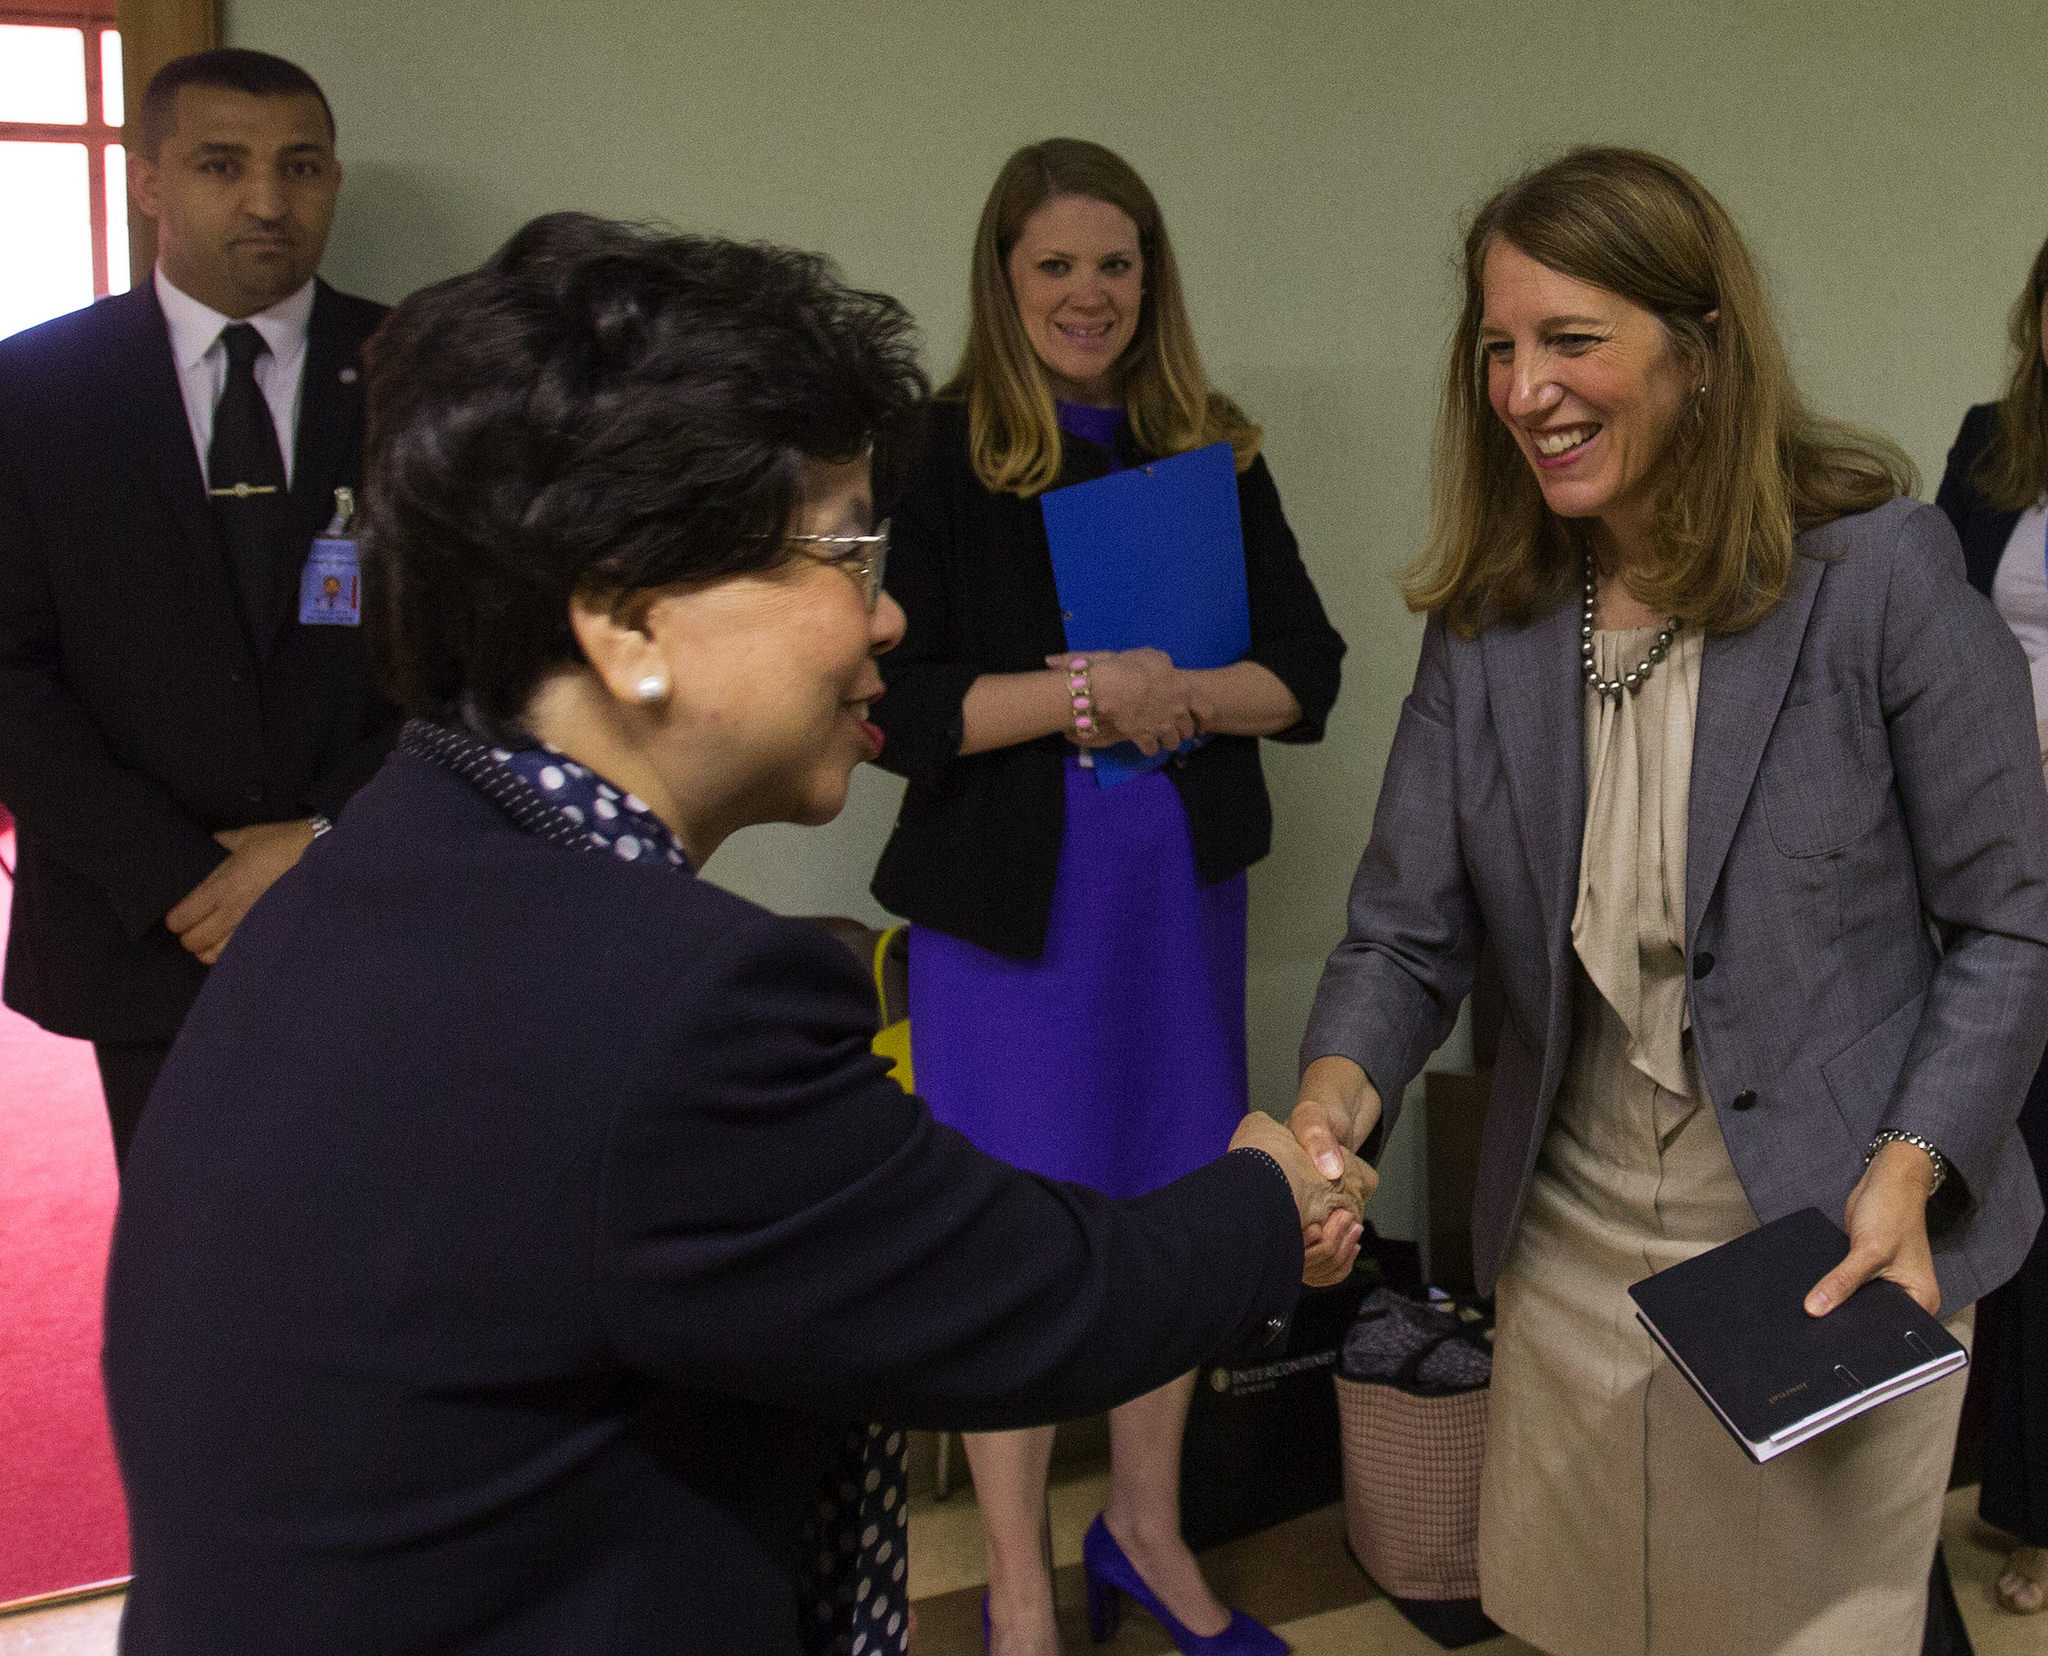 Secretary Burwell attends a World Health Assembly bilateral meeting with World Health Organization (WHO) Director-General, Dr. Margaret Chan.